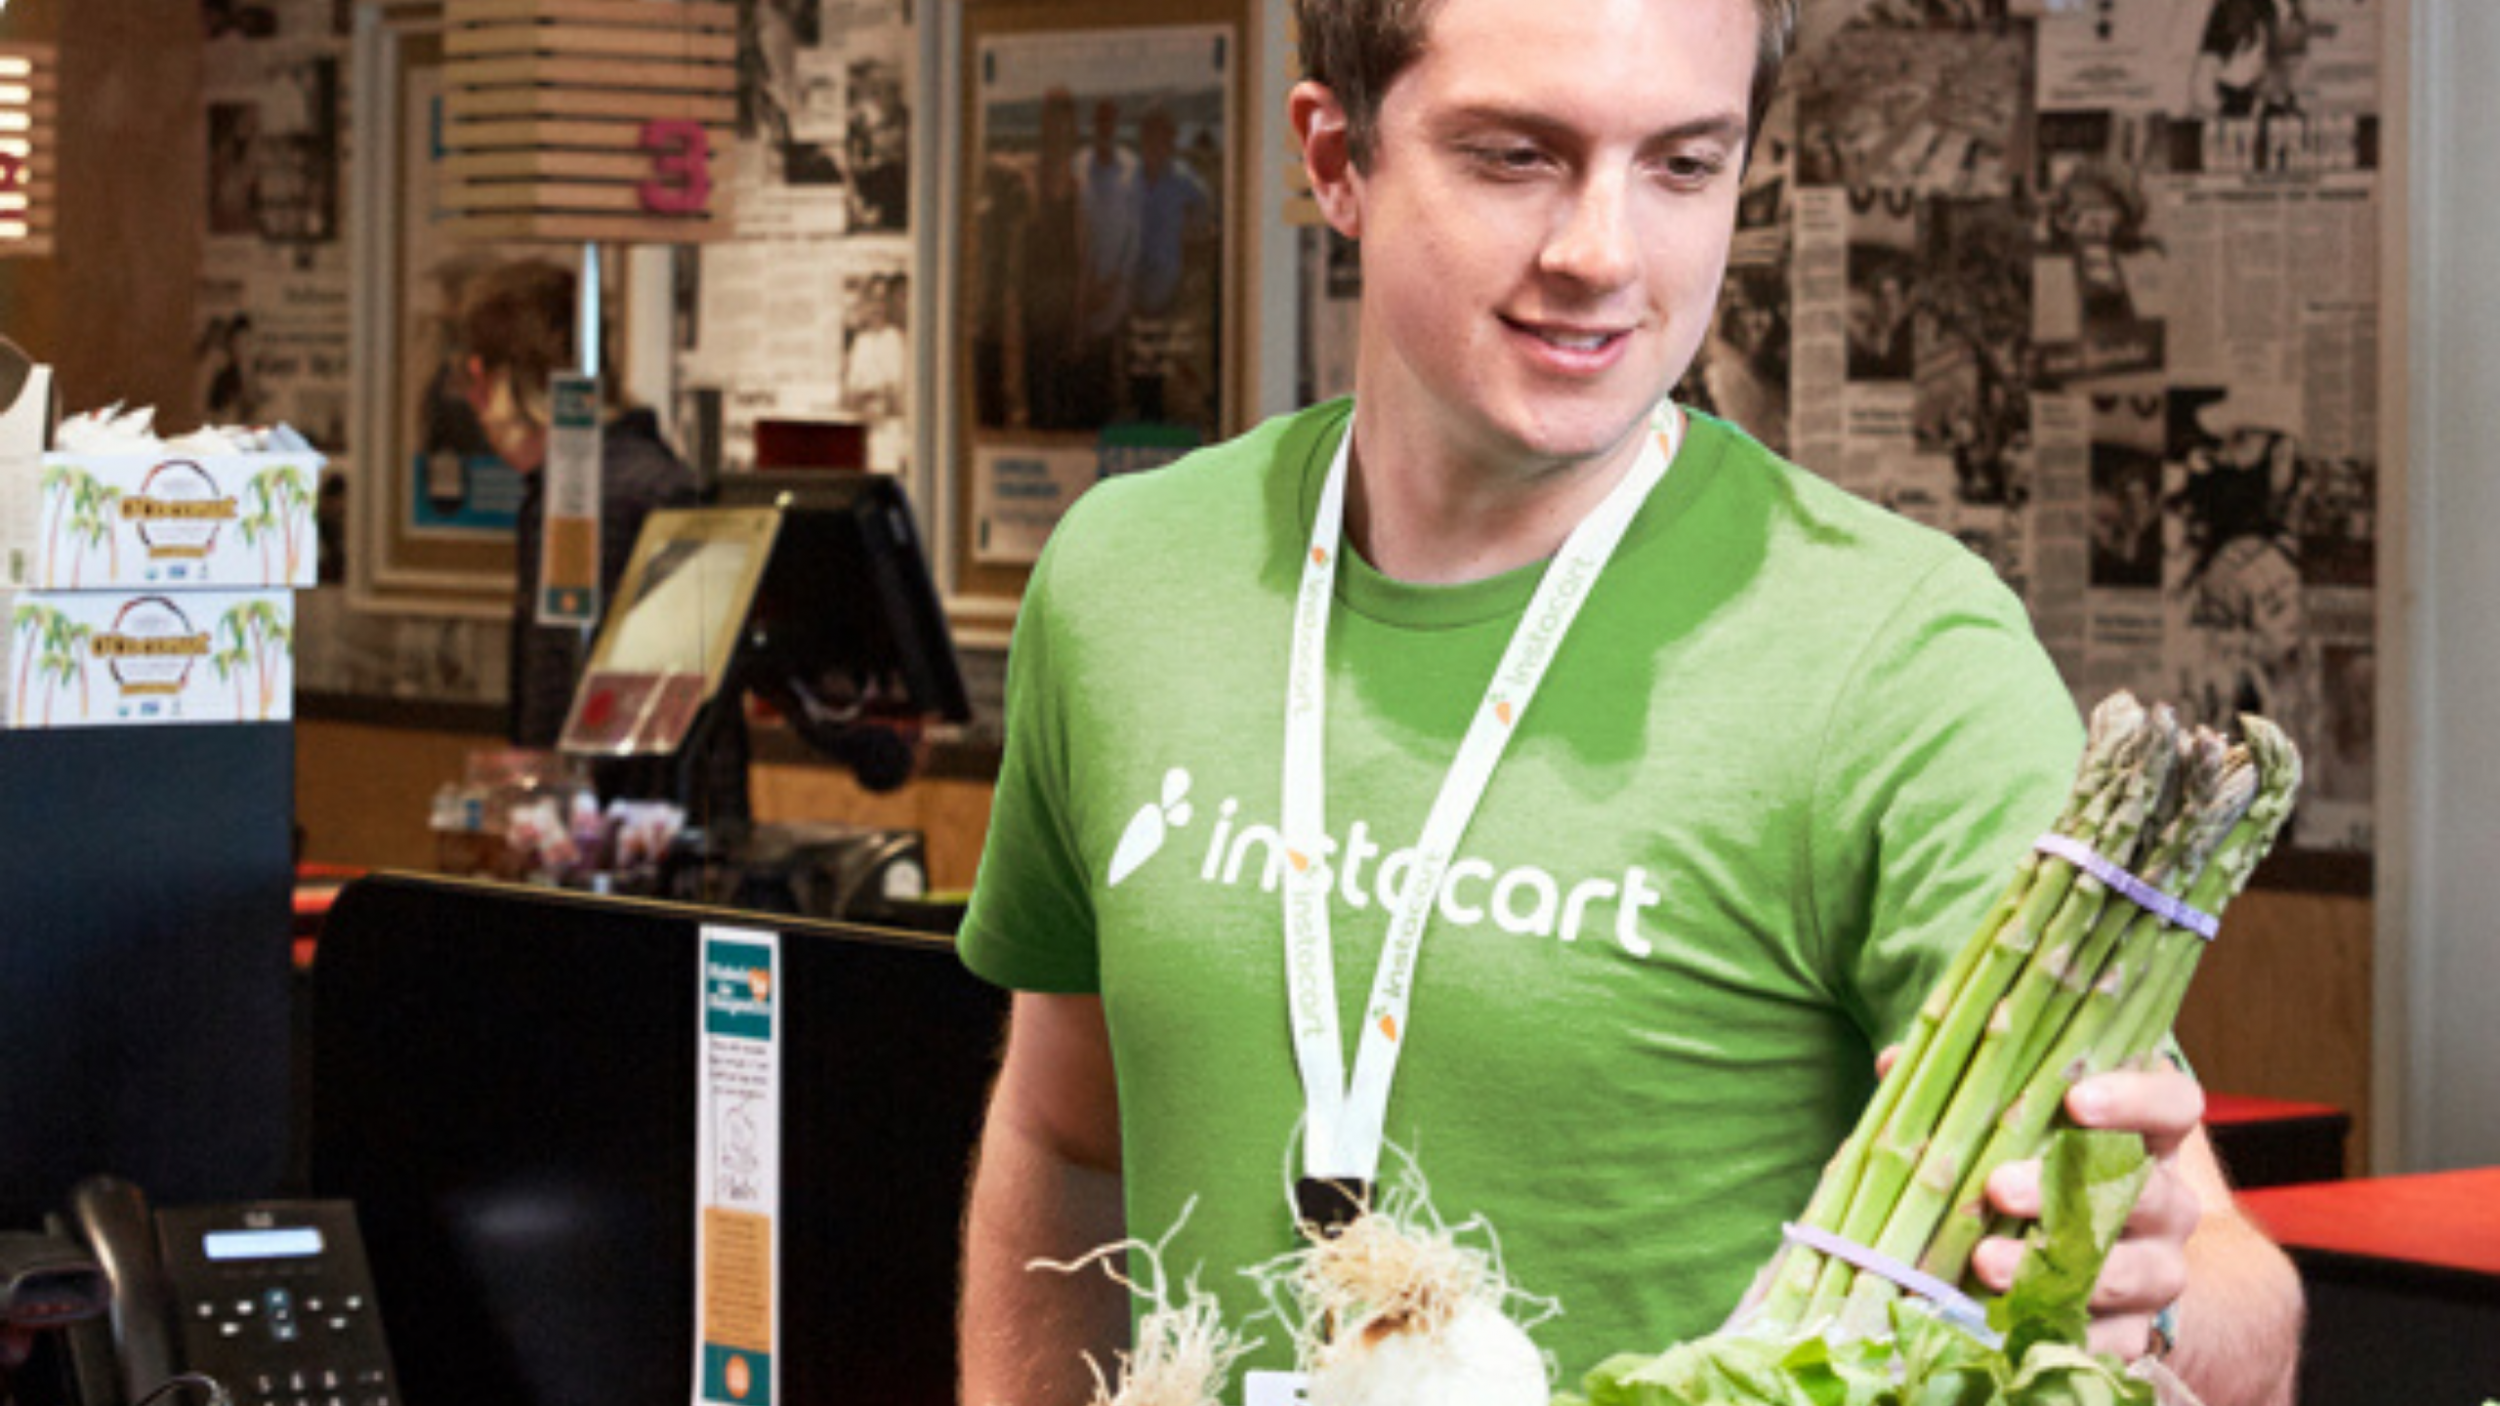 Connect with your Community through Instacart